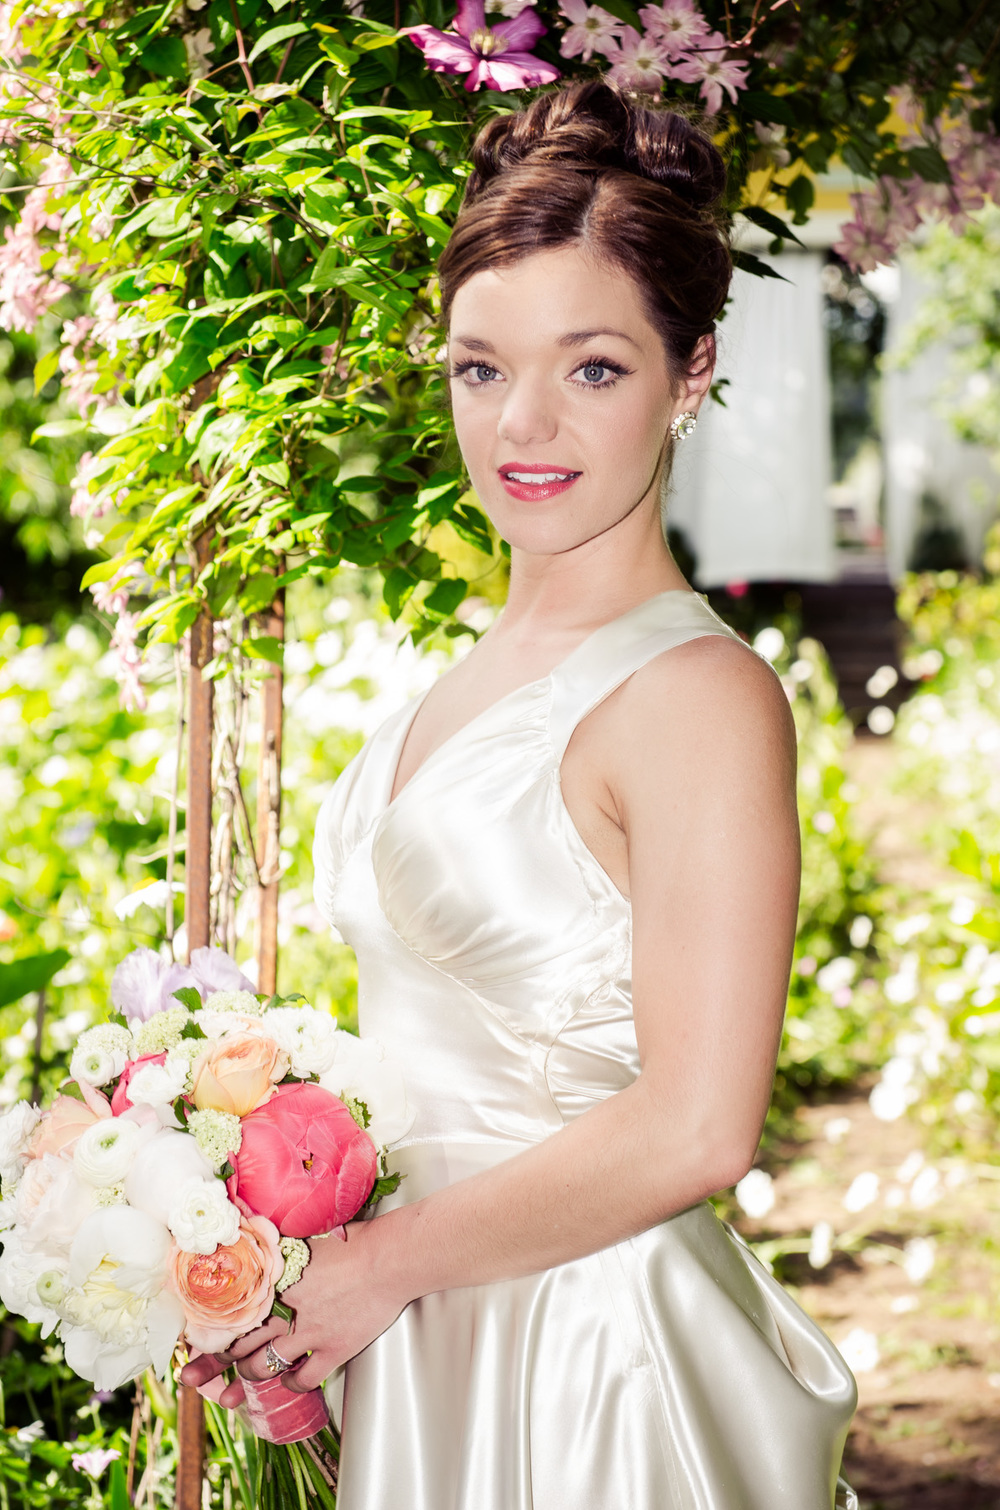 VA-wedding-AmyRollo-4988-Edit.jpg